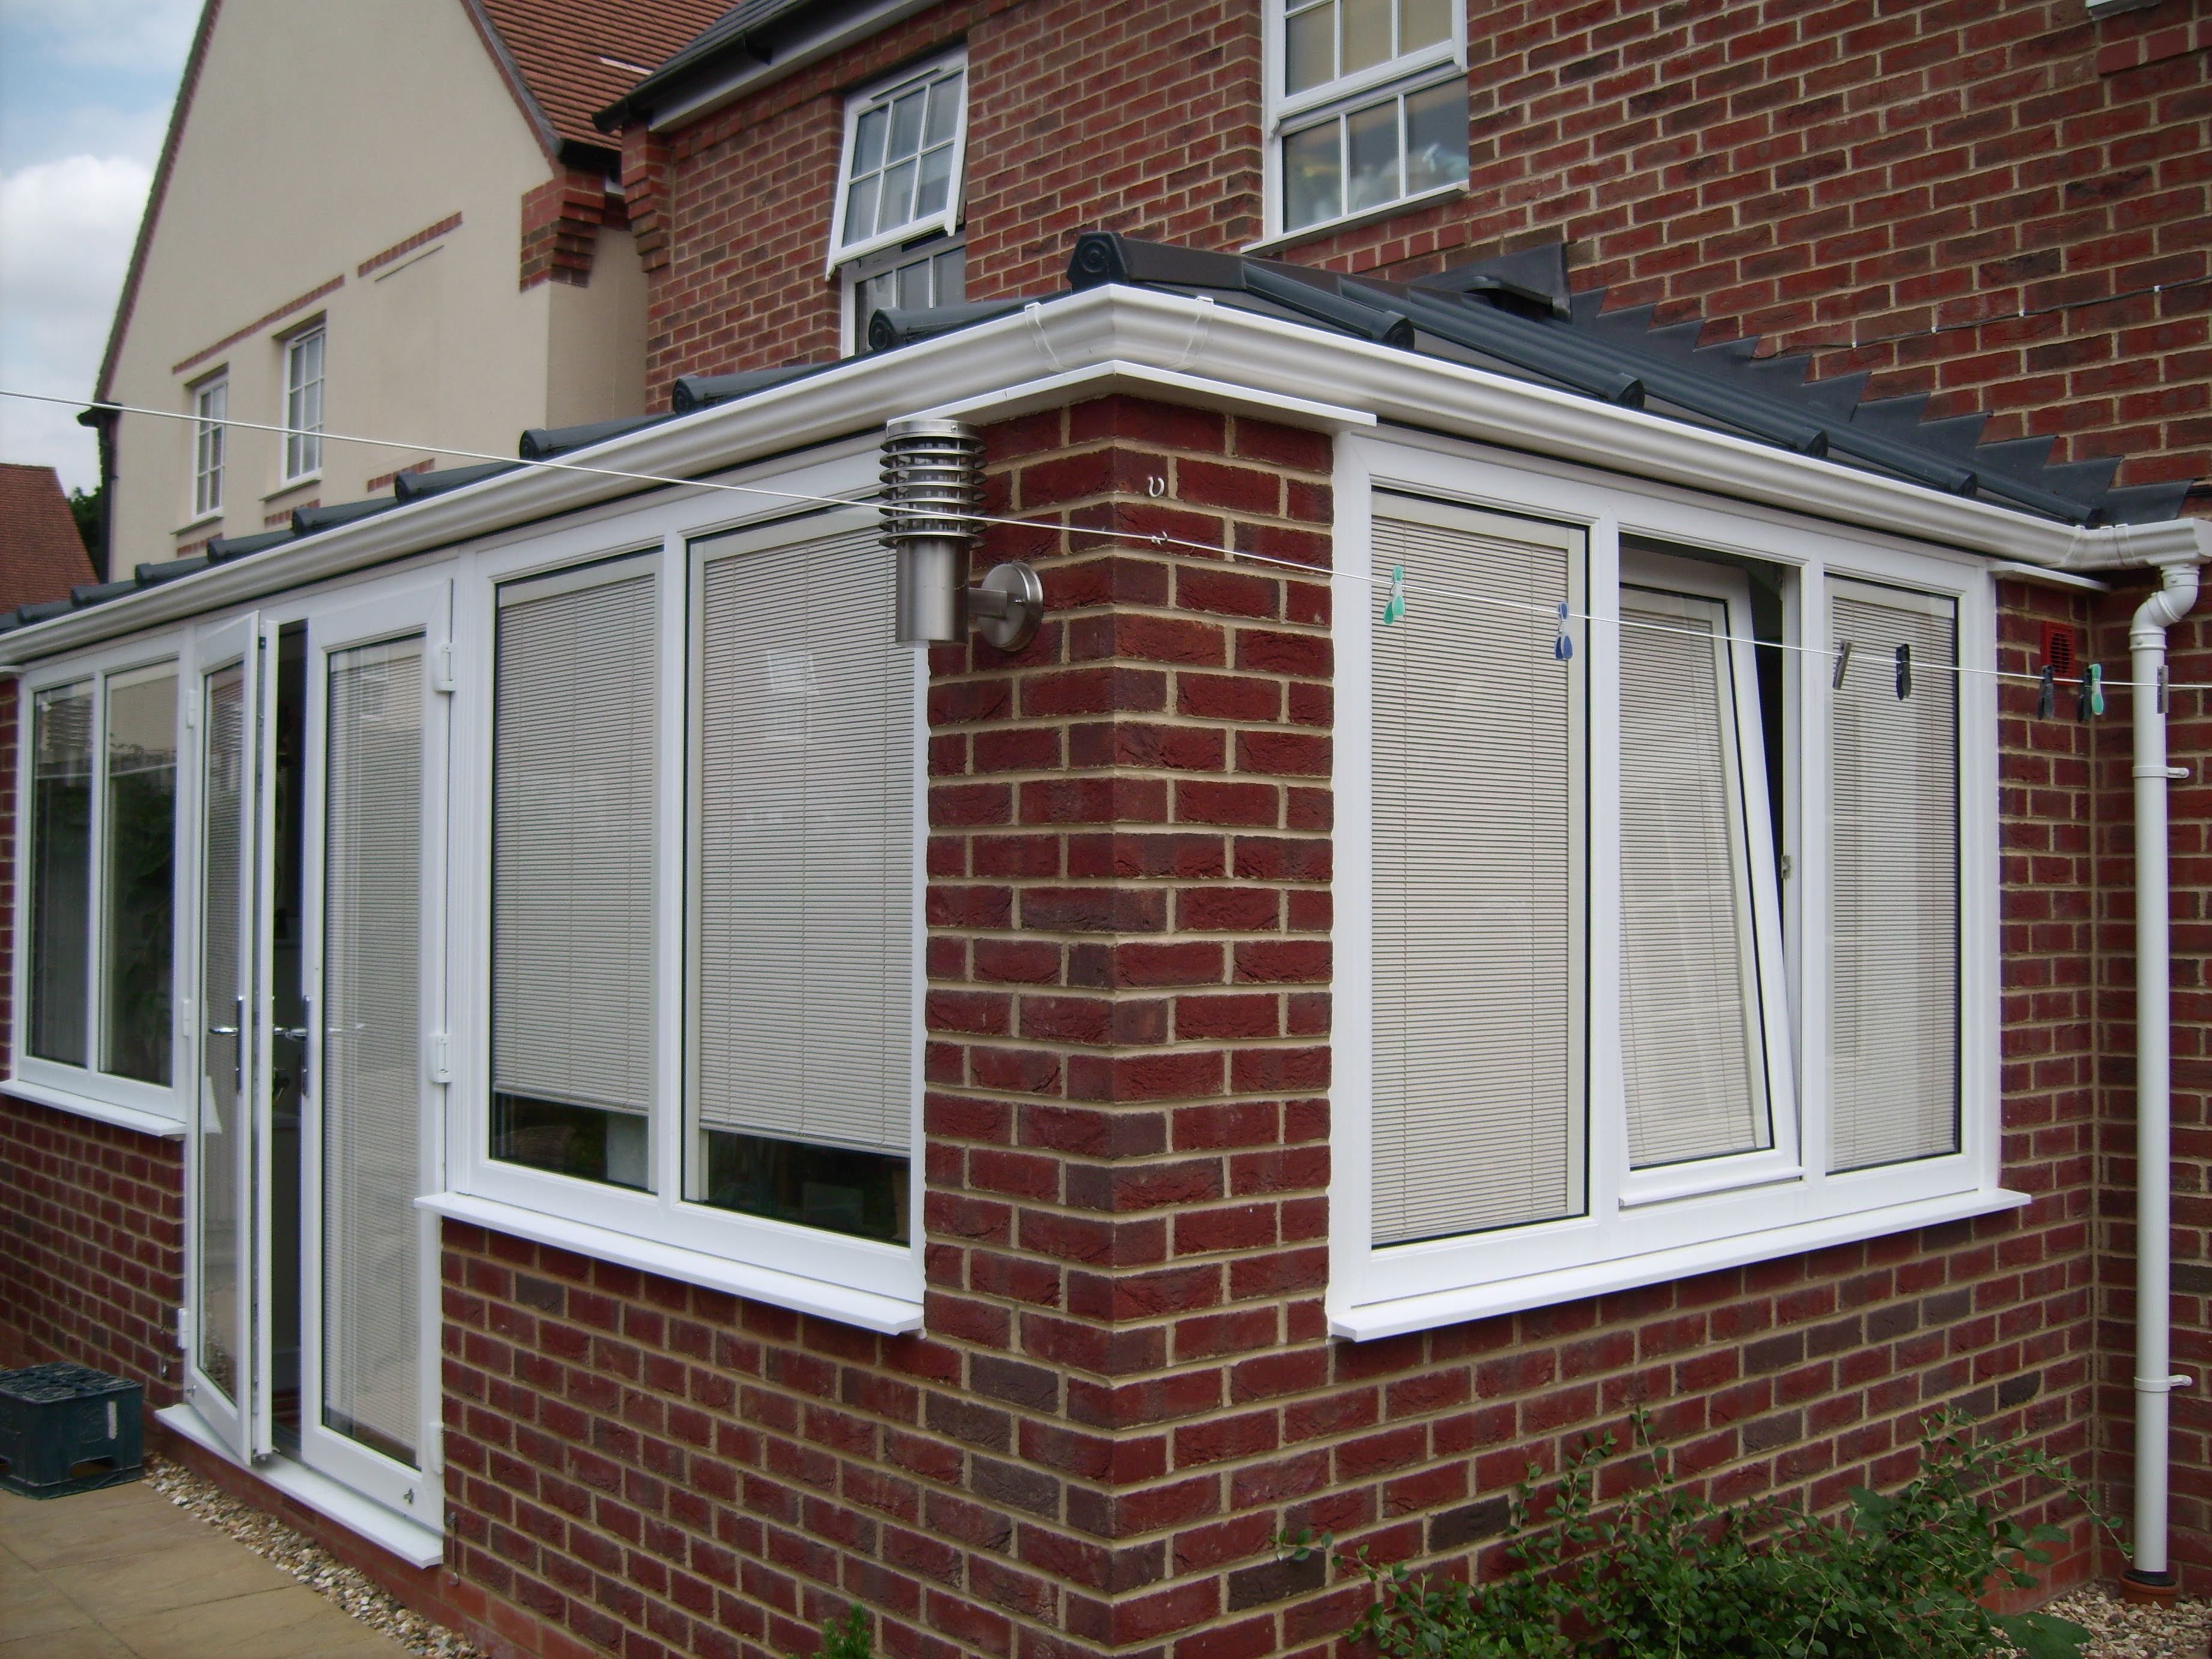 Outside view of built-in-blinds model for Livin room or conservatories.